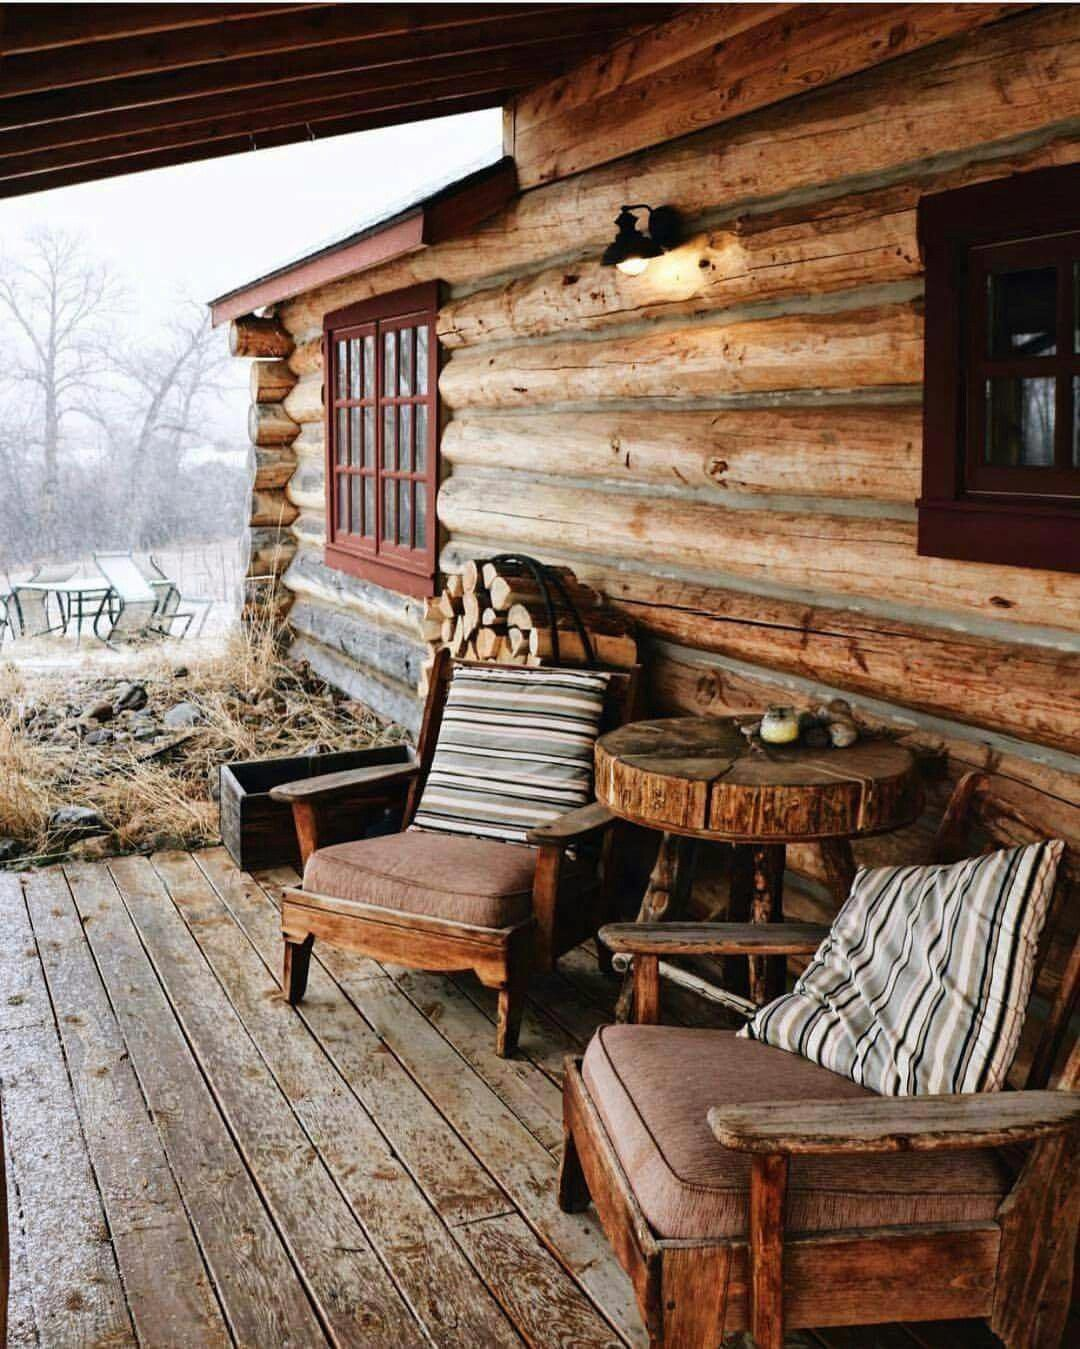 Charming Country Decor Ideas Superb Suggestions To Plan That Truly Warm And Charming Country Decor Diy Living Room Whip S Rustic House Log Homes Cabin Living